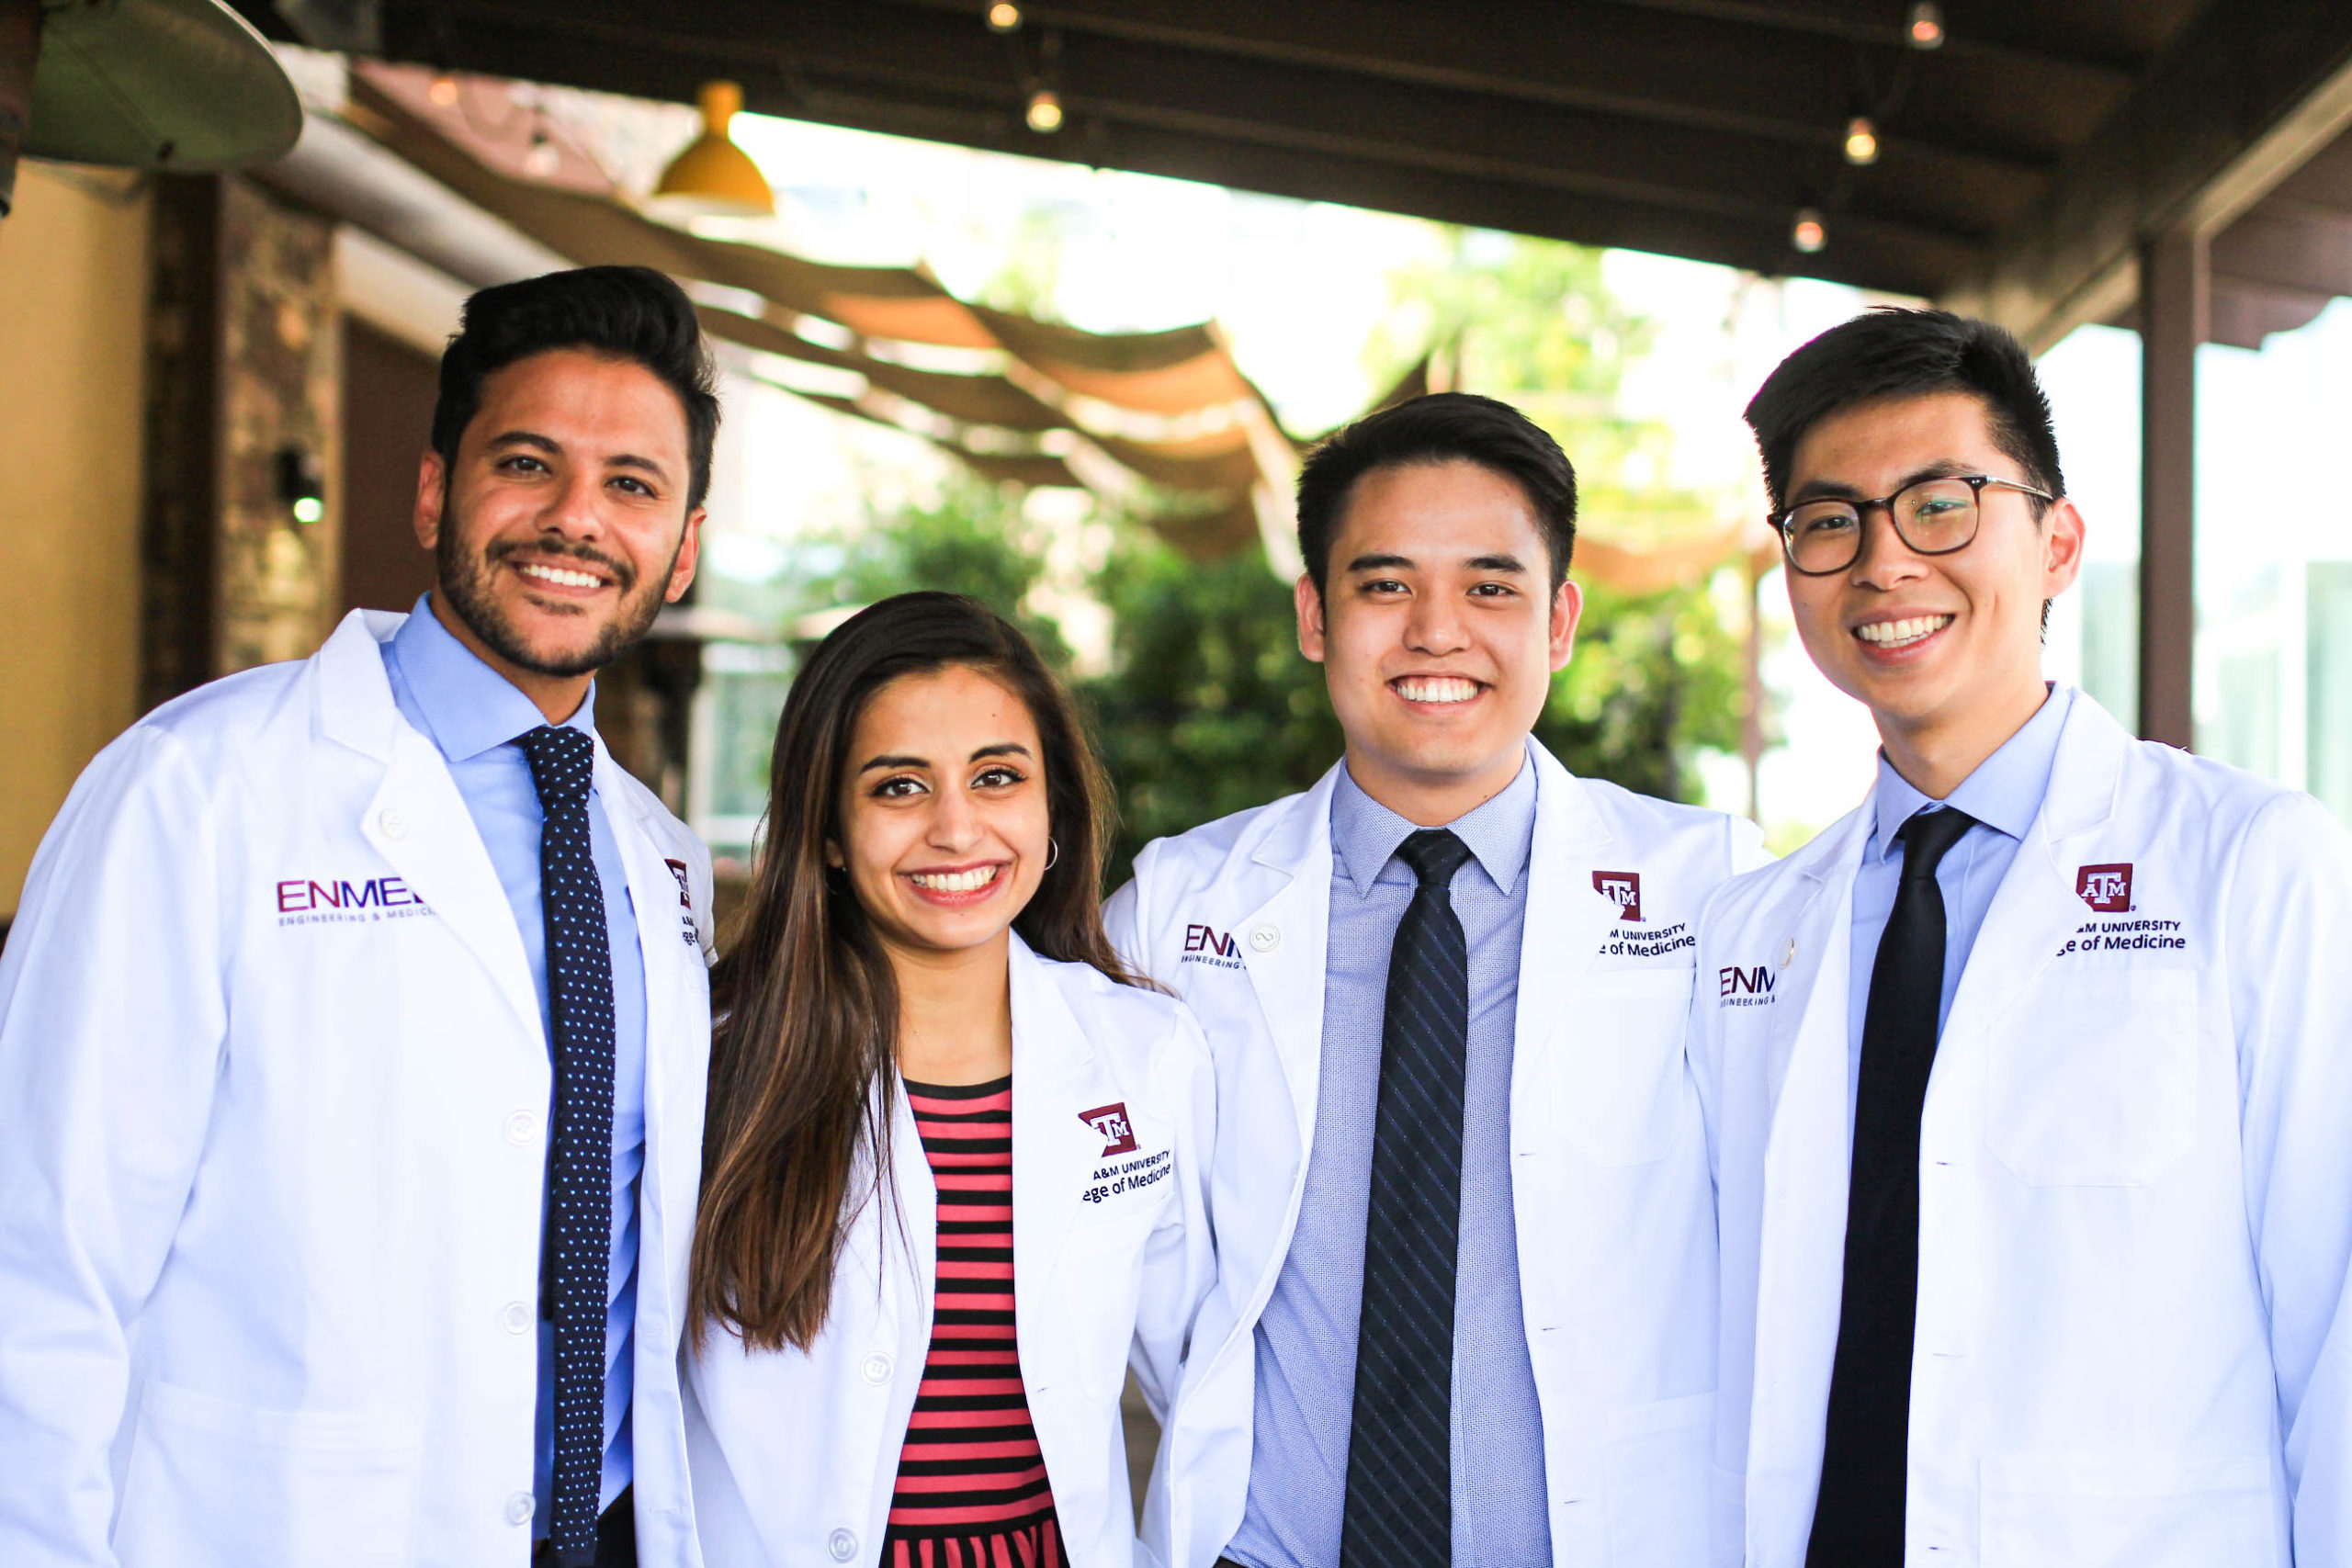 EnMed students graduate with medical doctorates and masters of engineering degrees in four years.